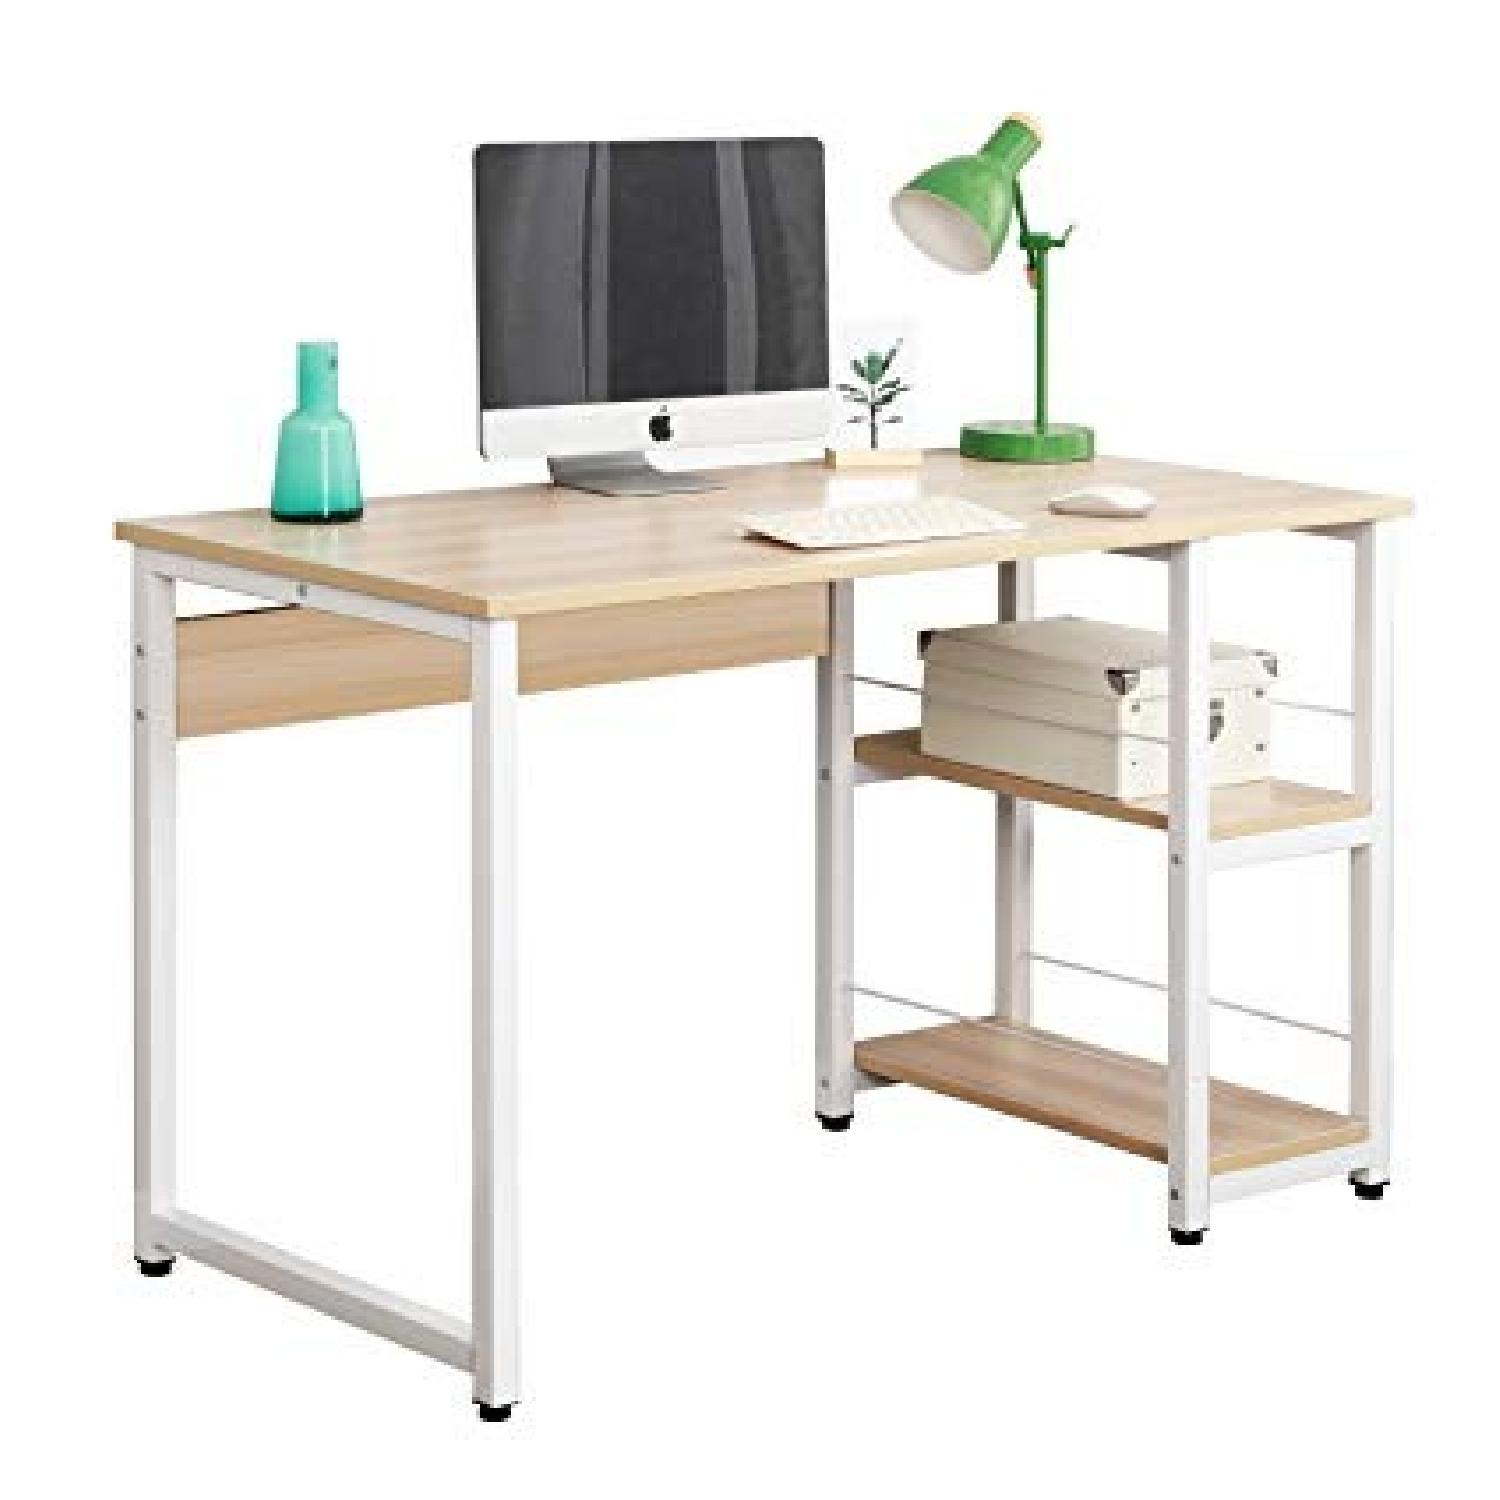 DLandHome Wooden Desk w/ 2 Shelves